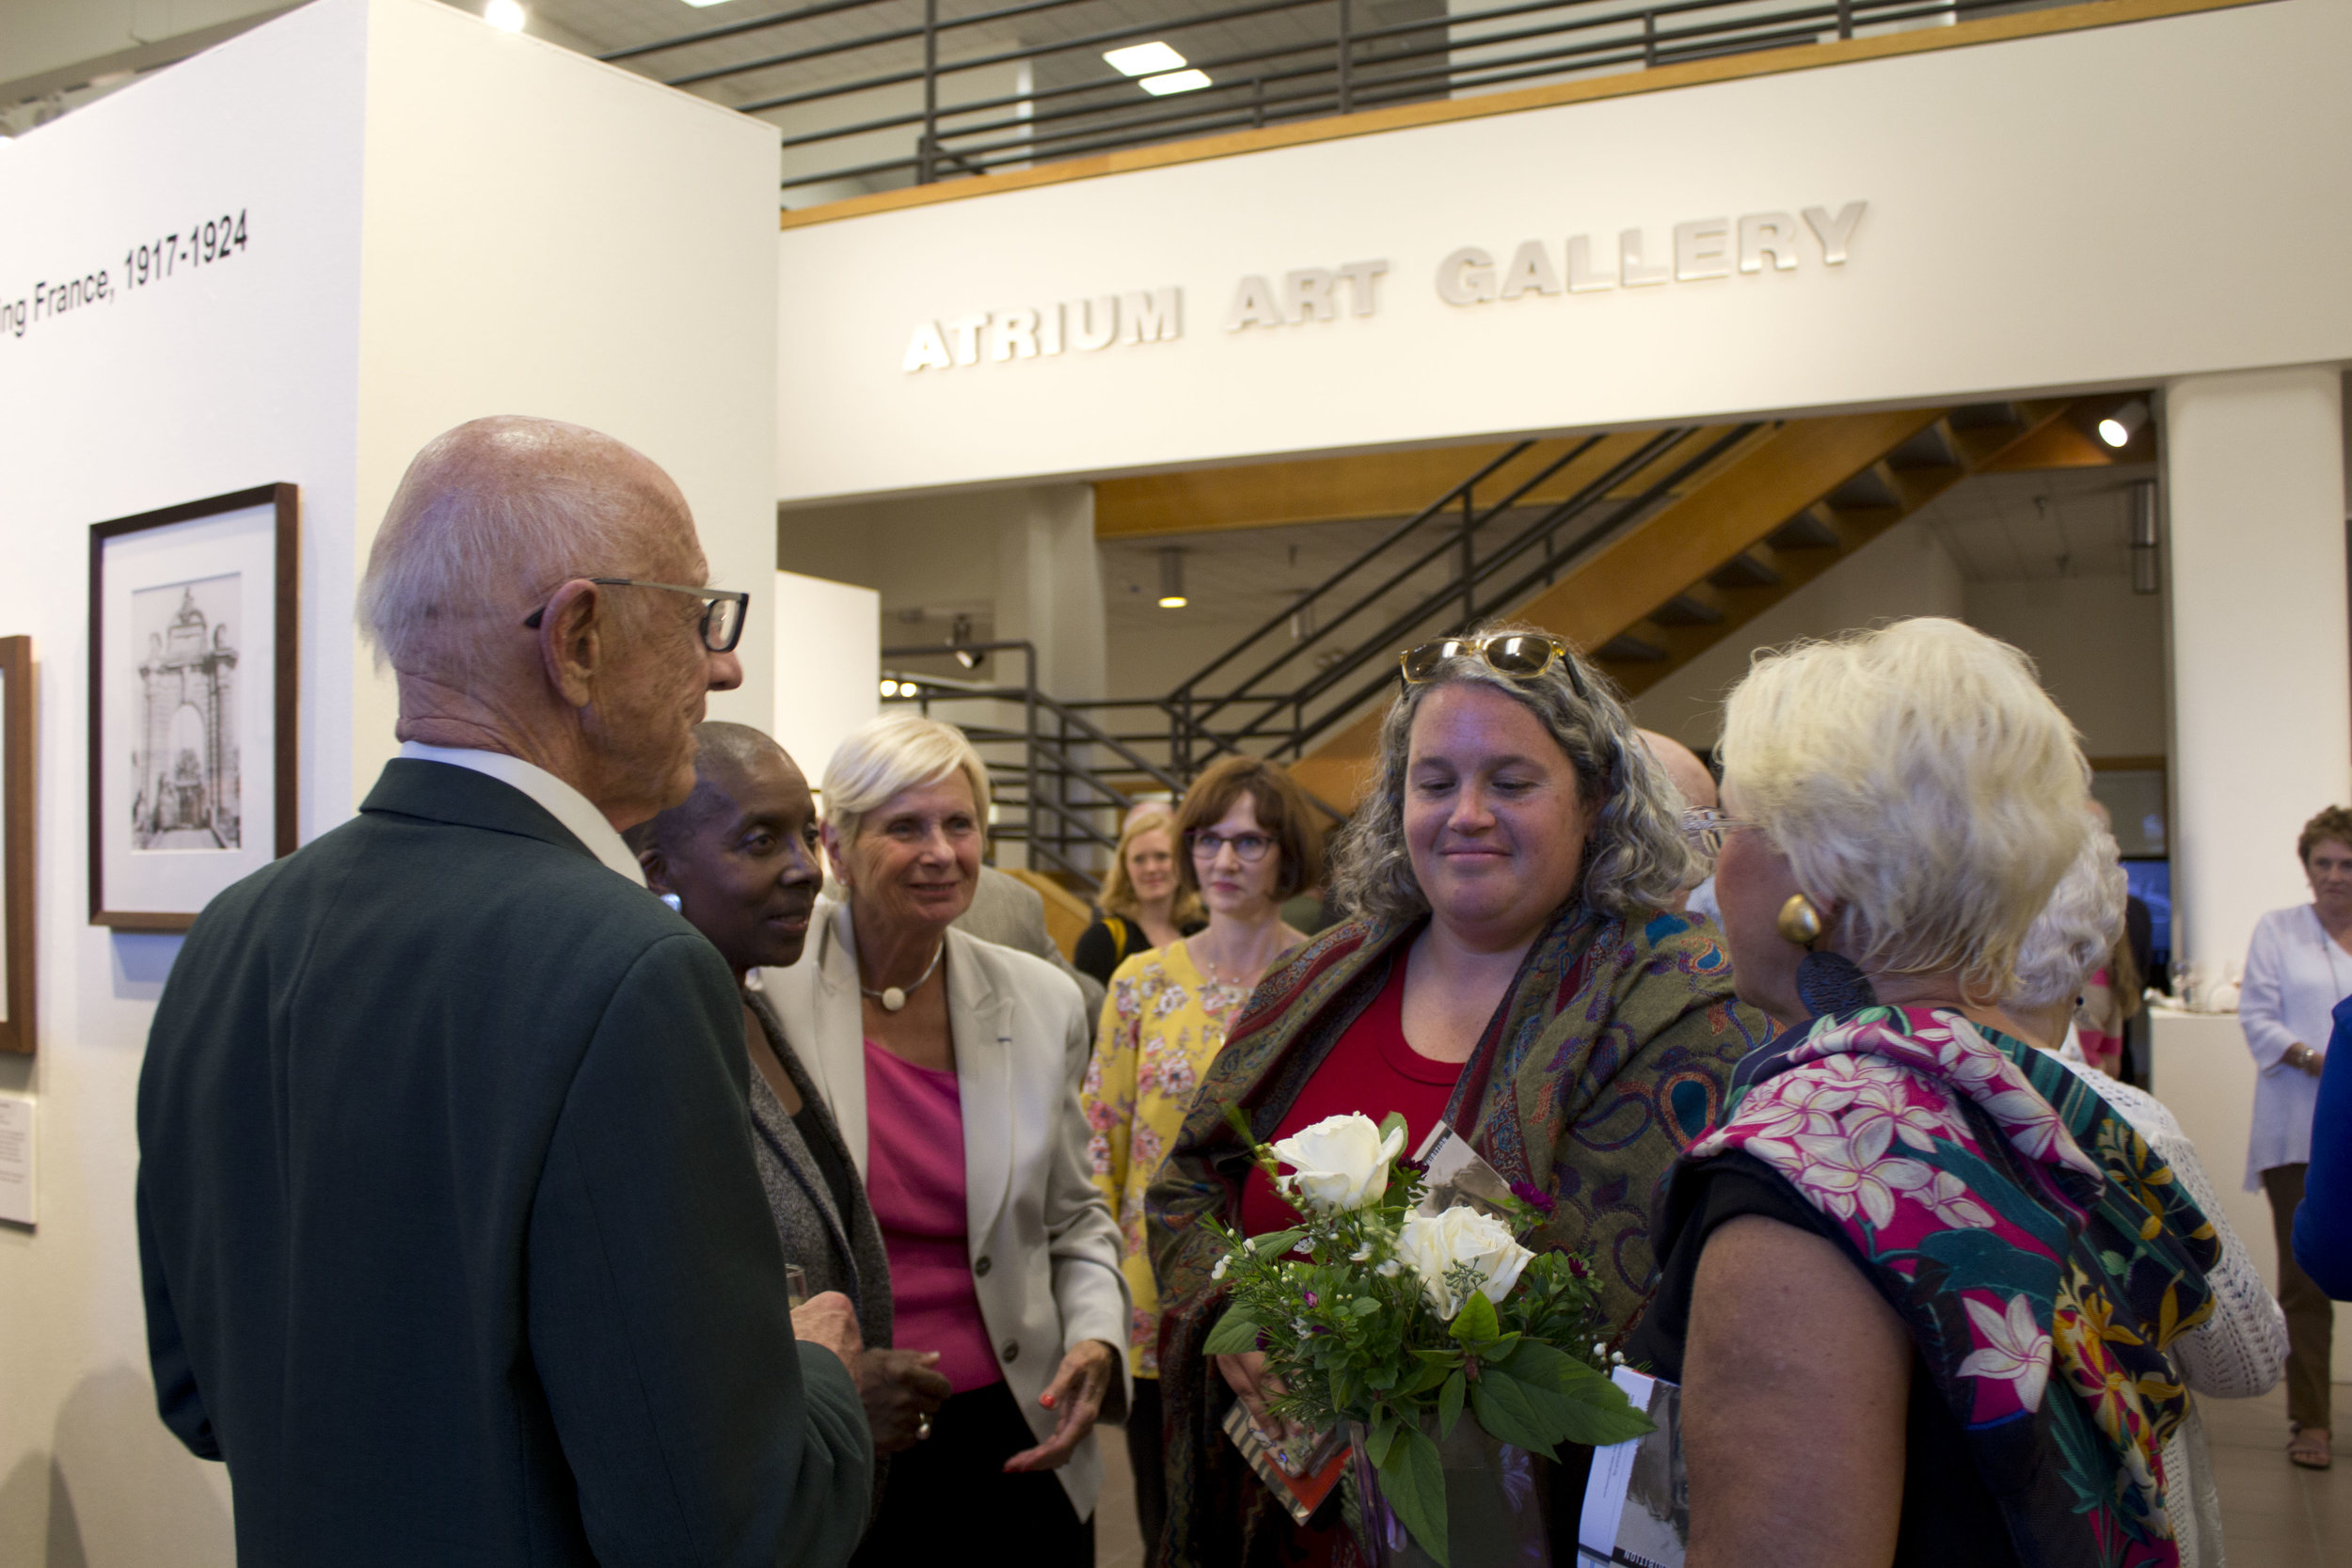 AWRF_USM-OpeningReception_Aug2017_7.jpg